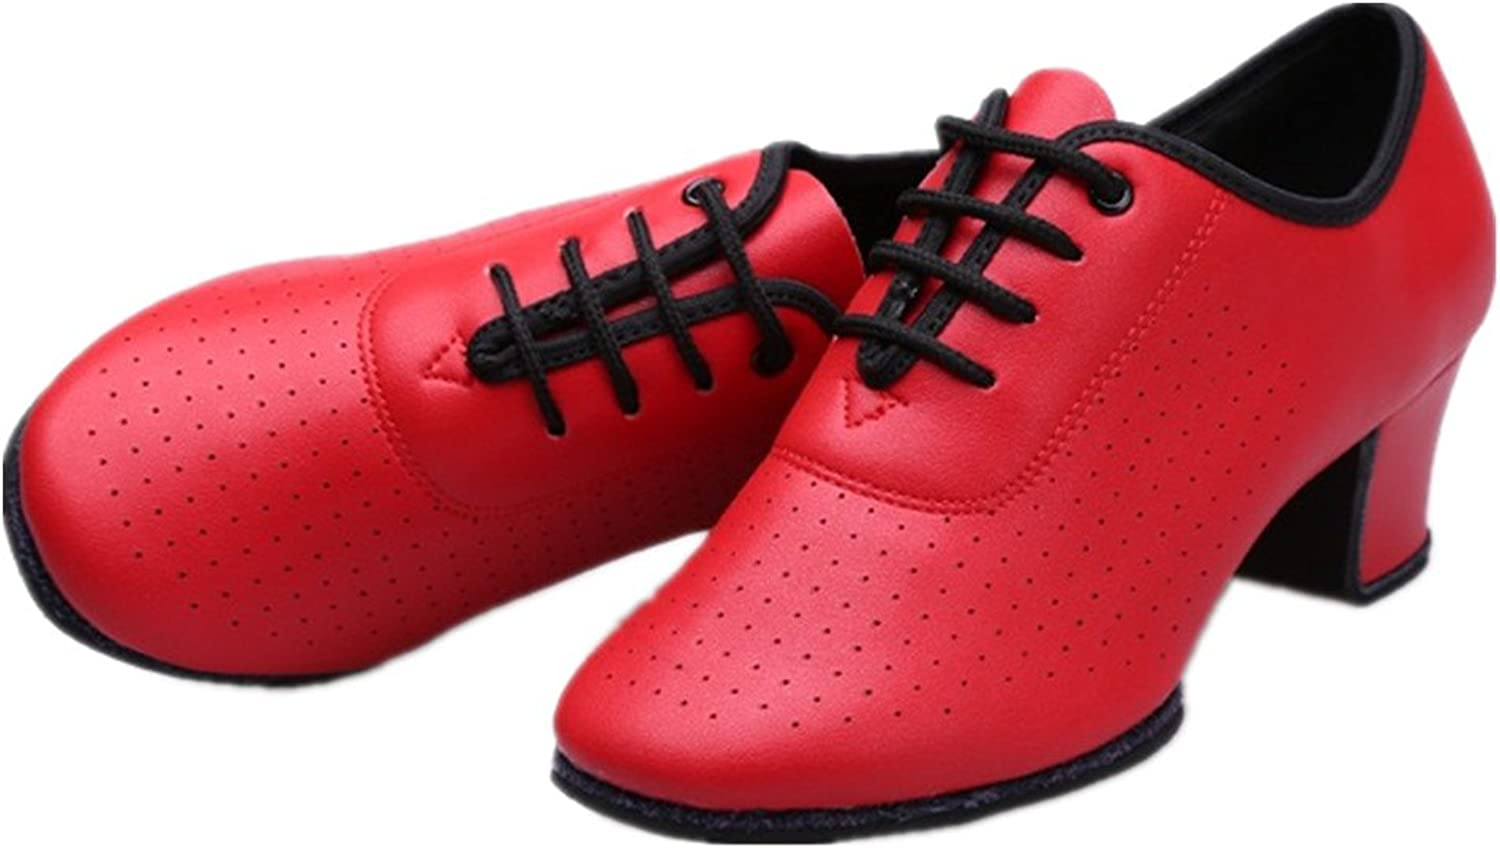 NLeahershoe Leather Laceup Dancing Latin shoes Breathable Dance shoes for Women Swing, Samba Dance Red